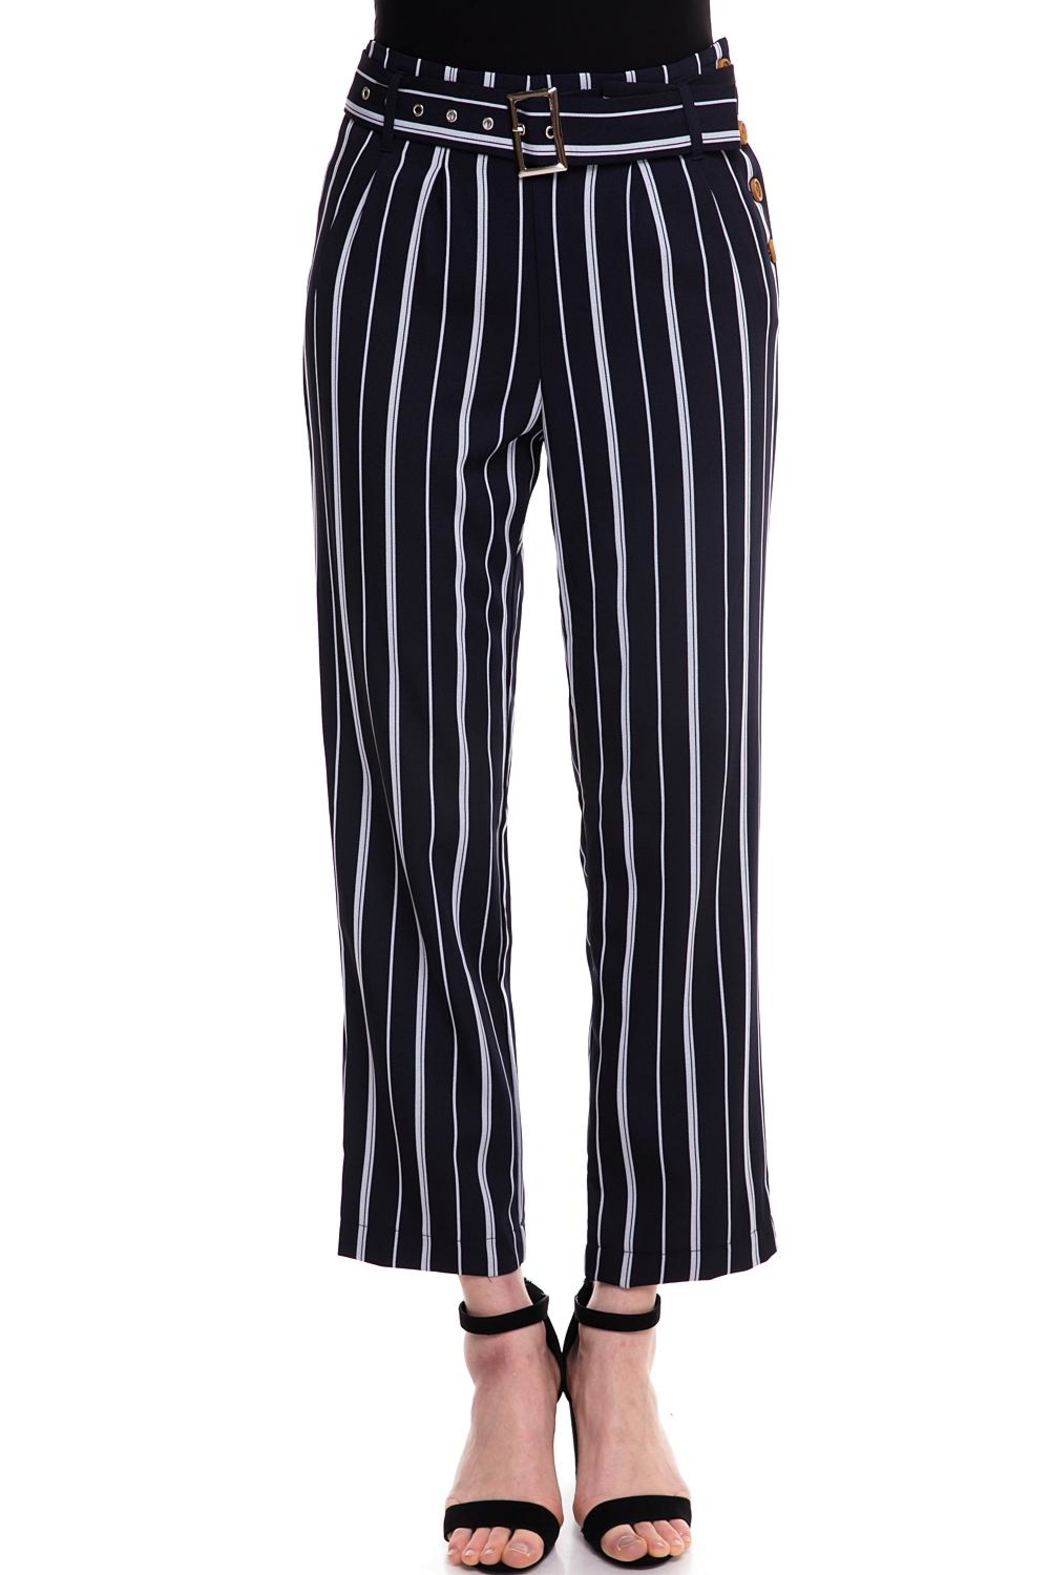 The Clothing Co Striped Buttoned Pants - Main Image